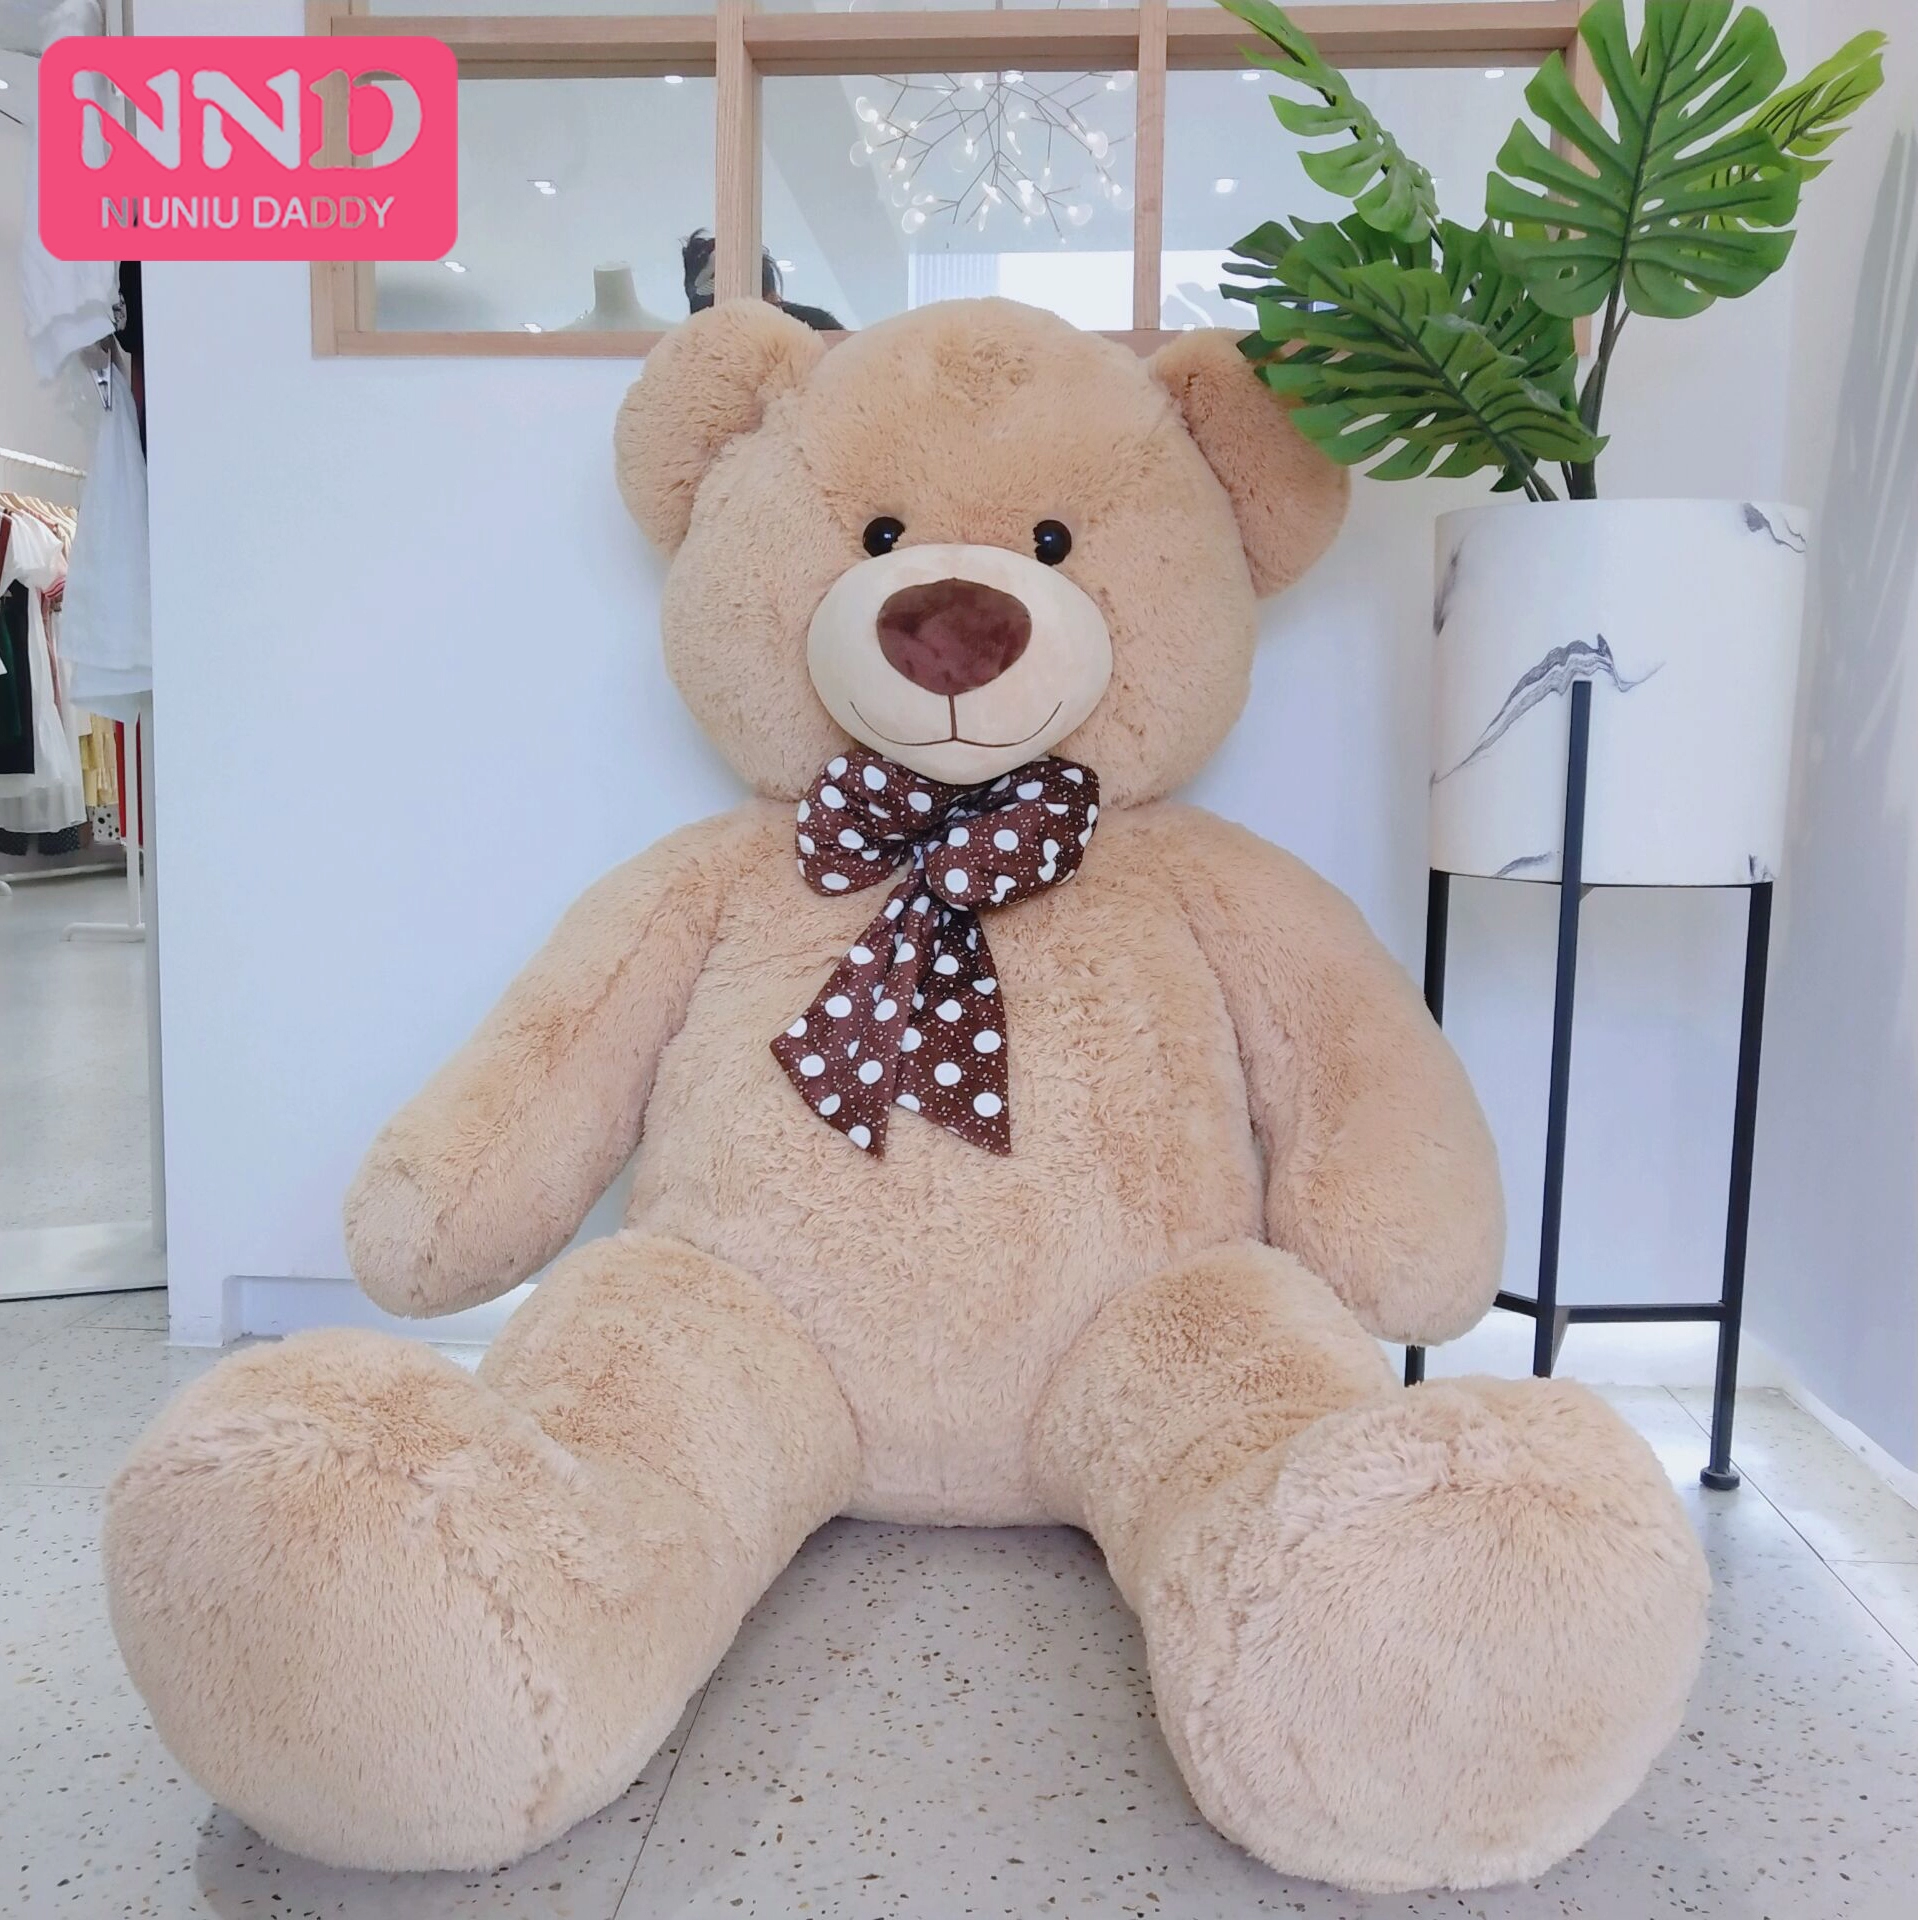 Niuniu Daddy Huge Teddy Bear Skin High Quality Plush Wave Point Tie Bear Skin